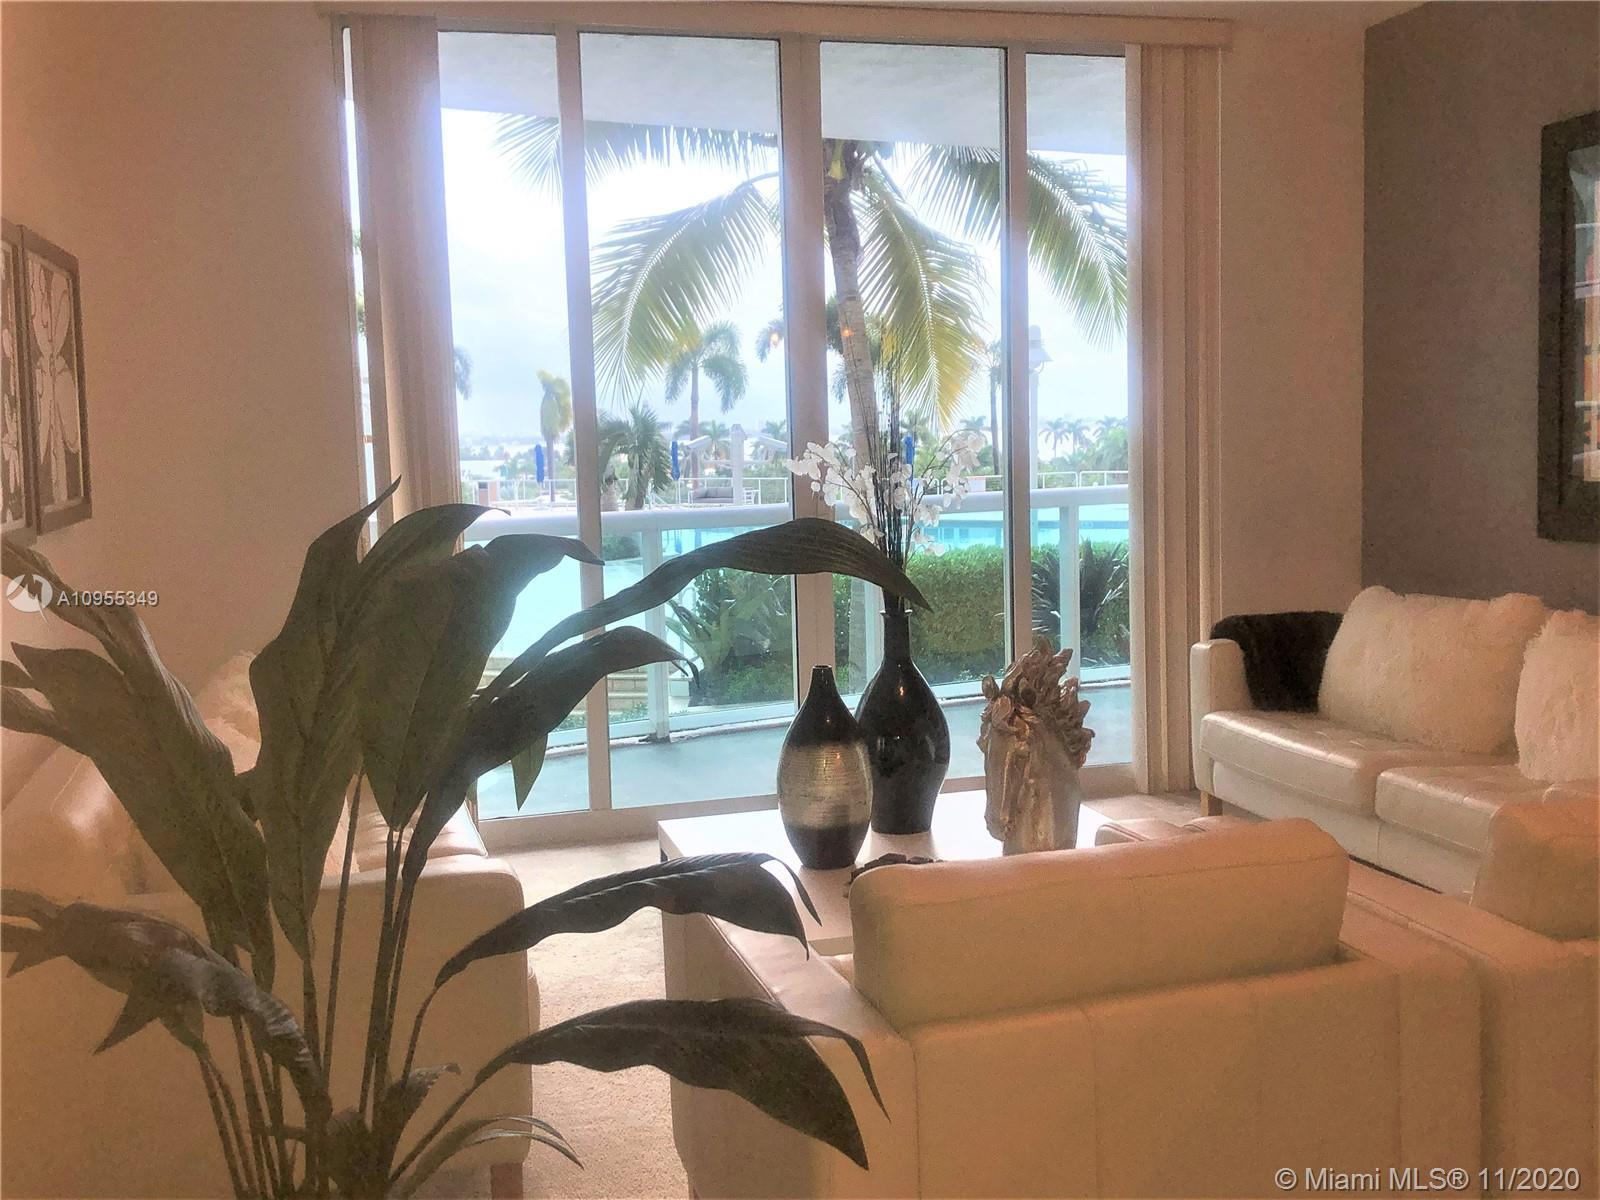 This spacious and bright condo residence features 2 Bed 2 Bath split floor plan. Marble floors in en